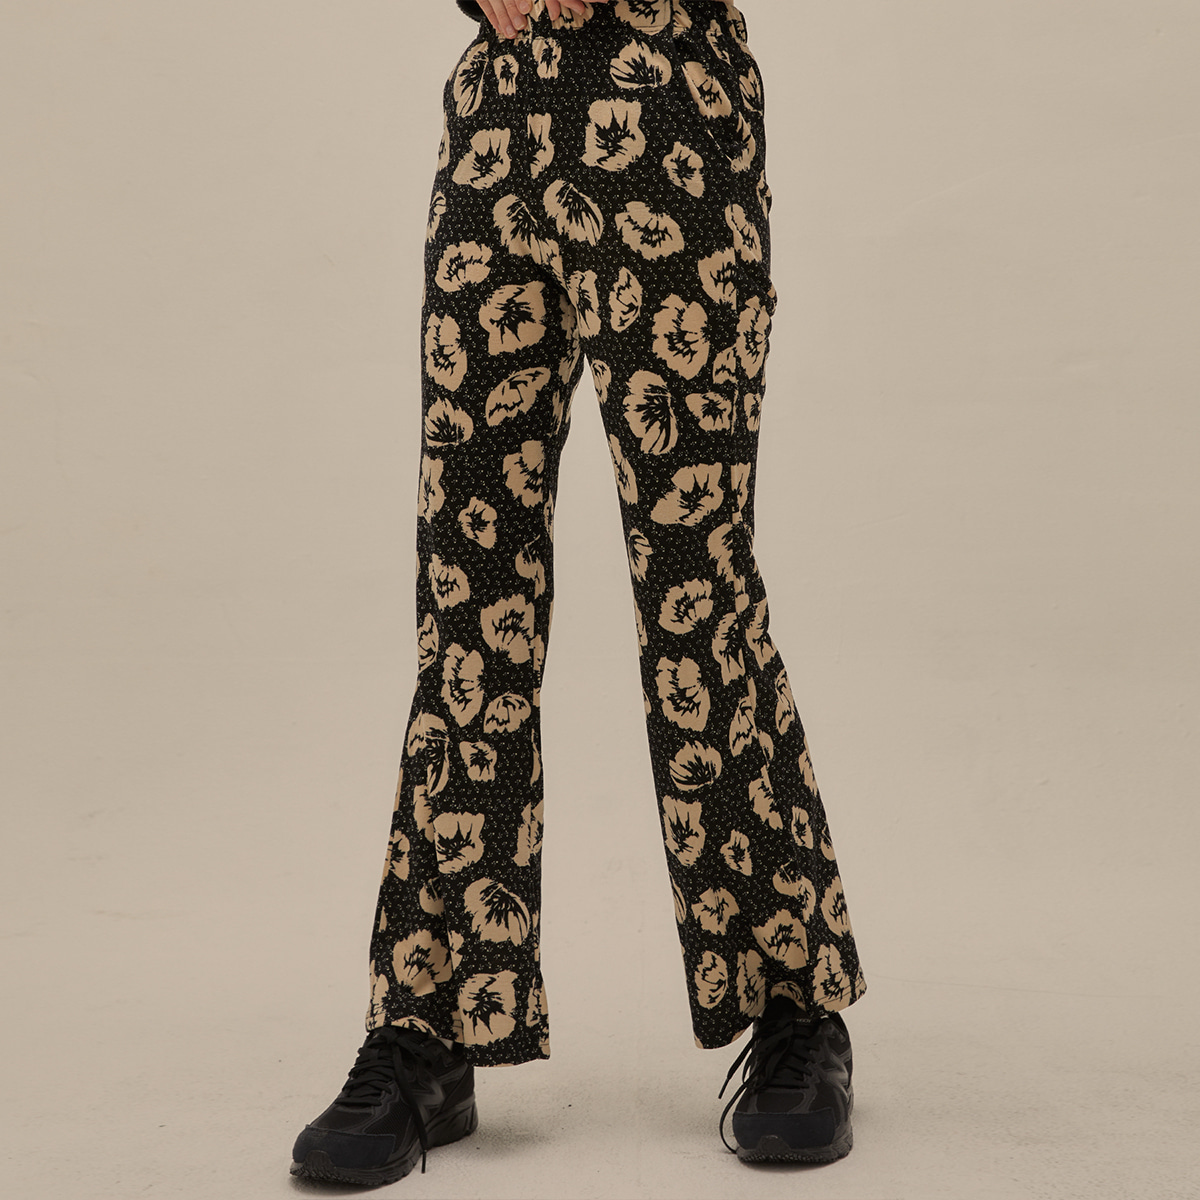 PO FLOWER BOOTS CUT PANTS(BLACK)